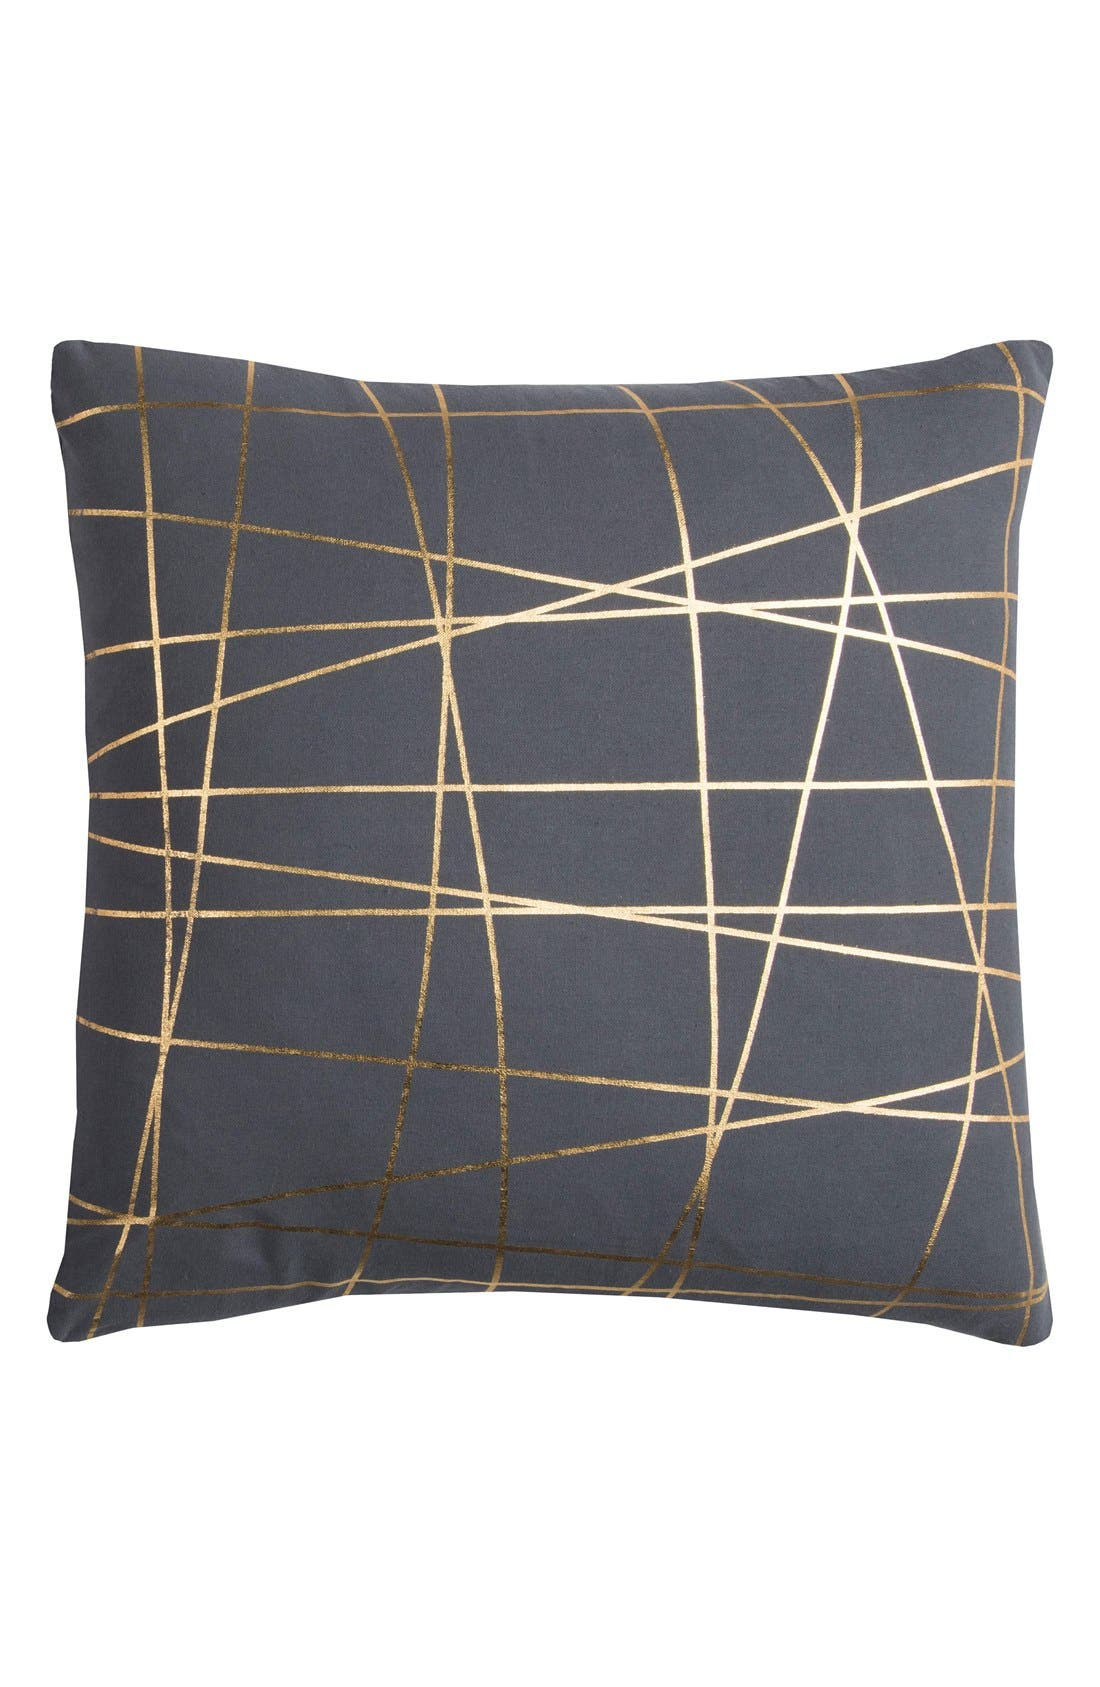 Main Image - Rizzy Home Metallic Lines Accent Pillow